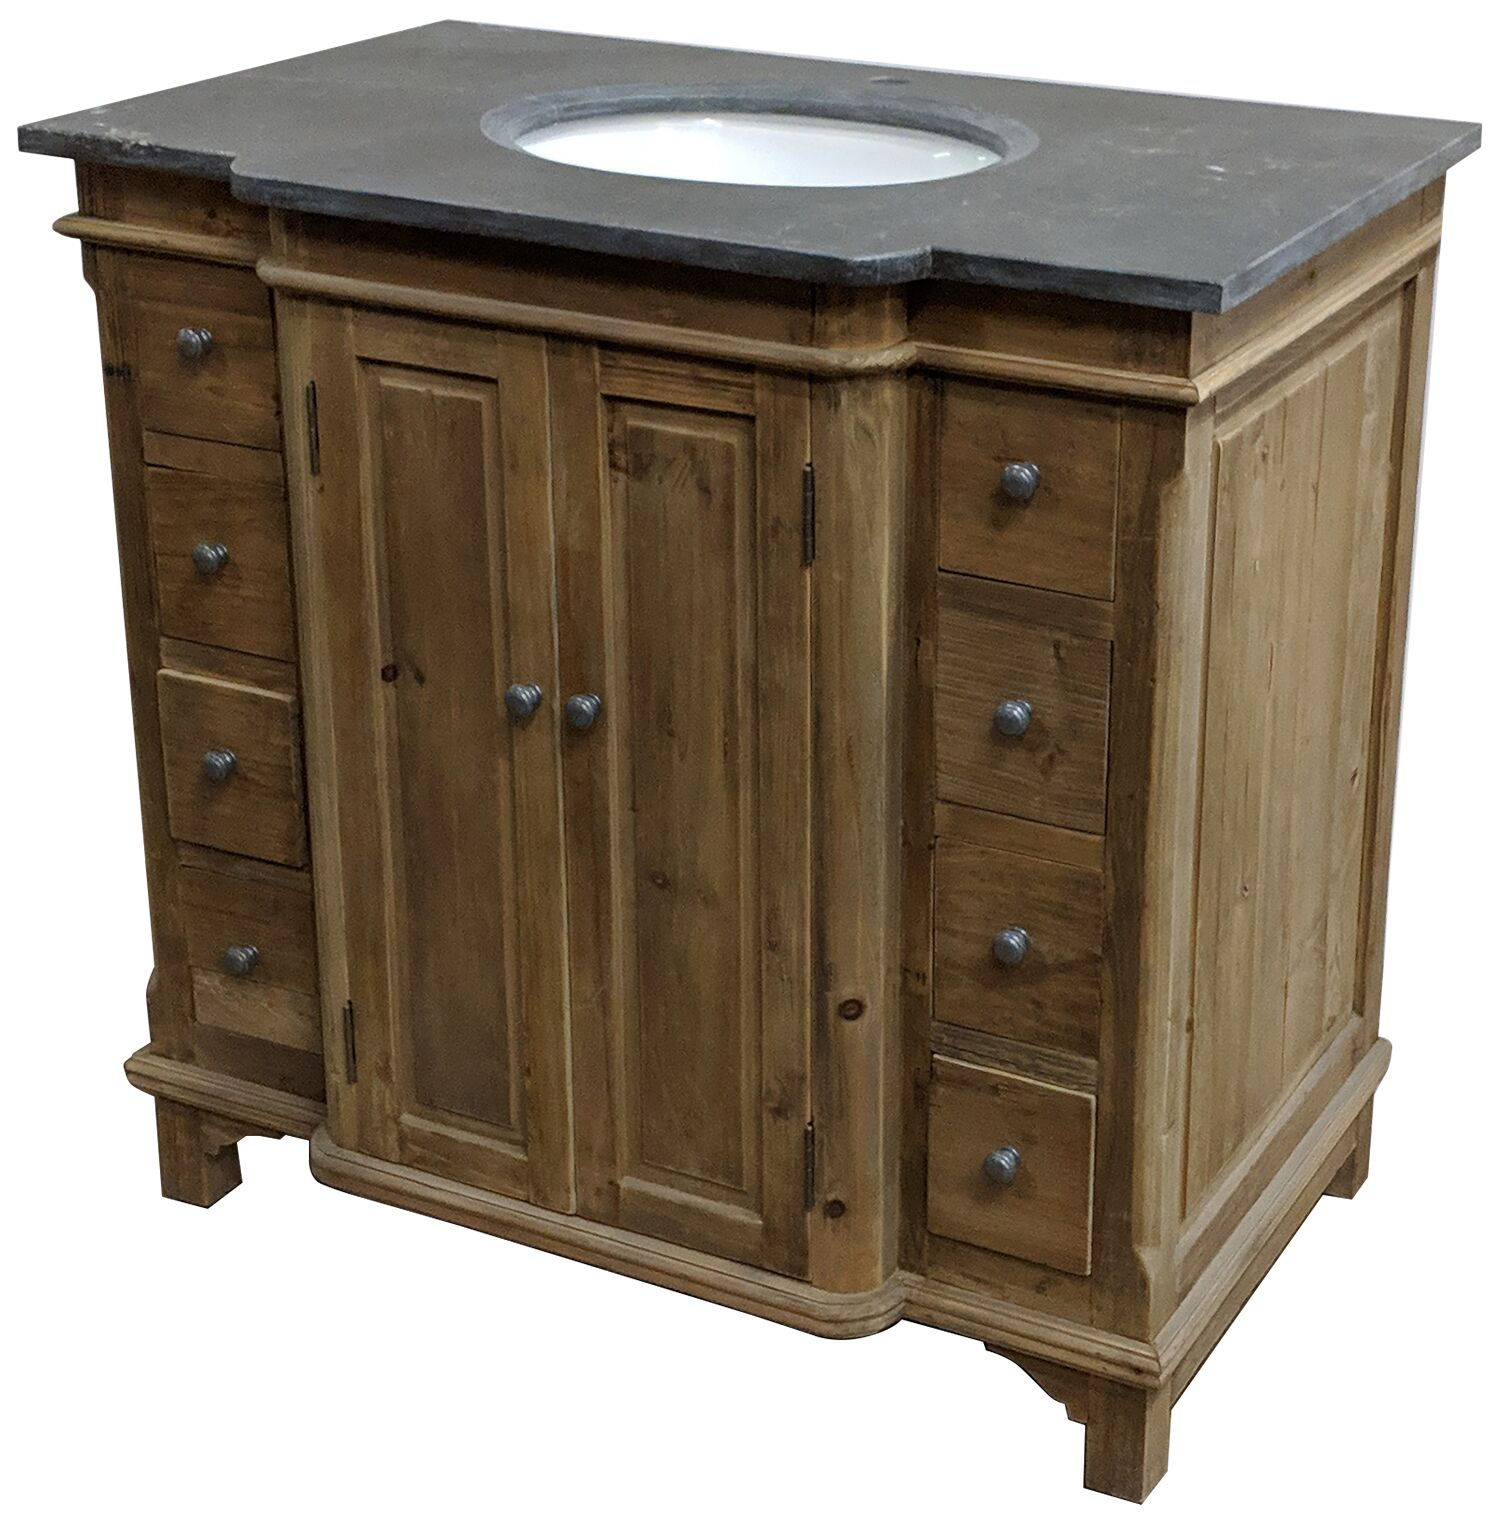 "38"" Handcrafted Reclaimed Pine Solid Wood Single Bath Vanity Natural Pine Finish"